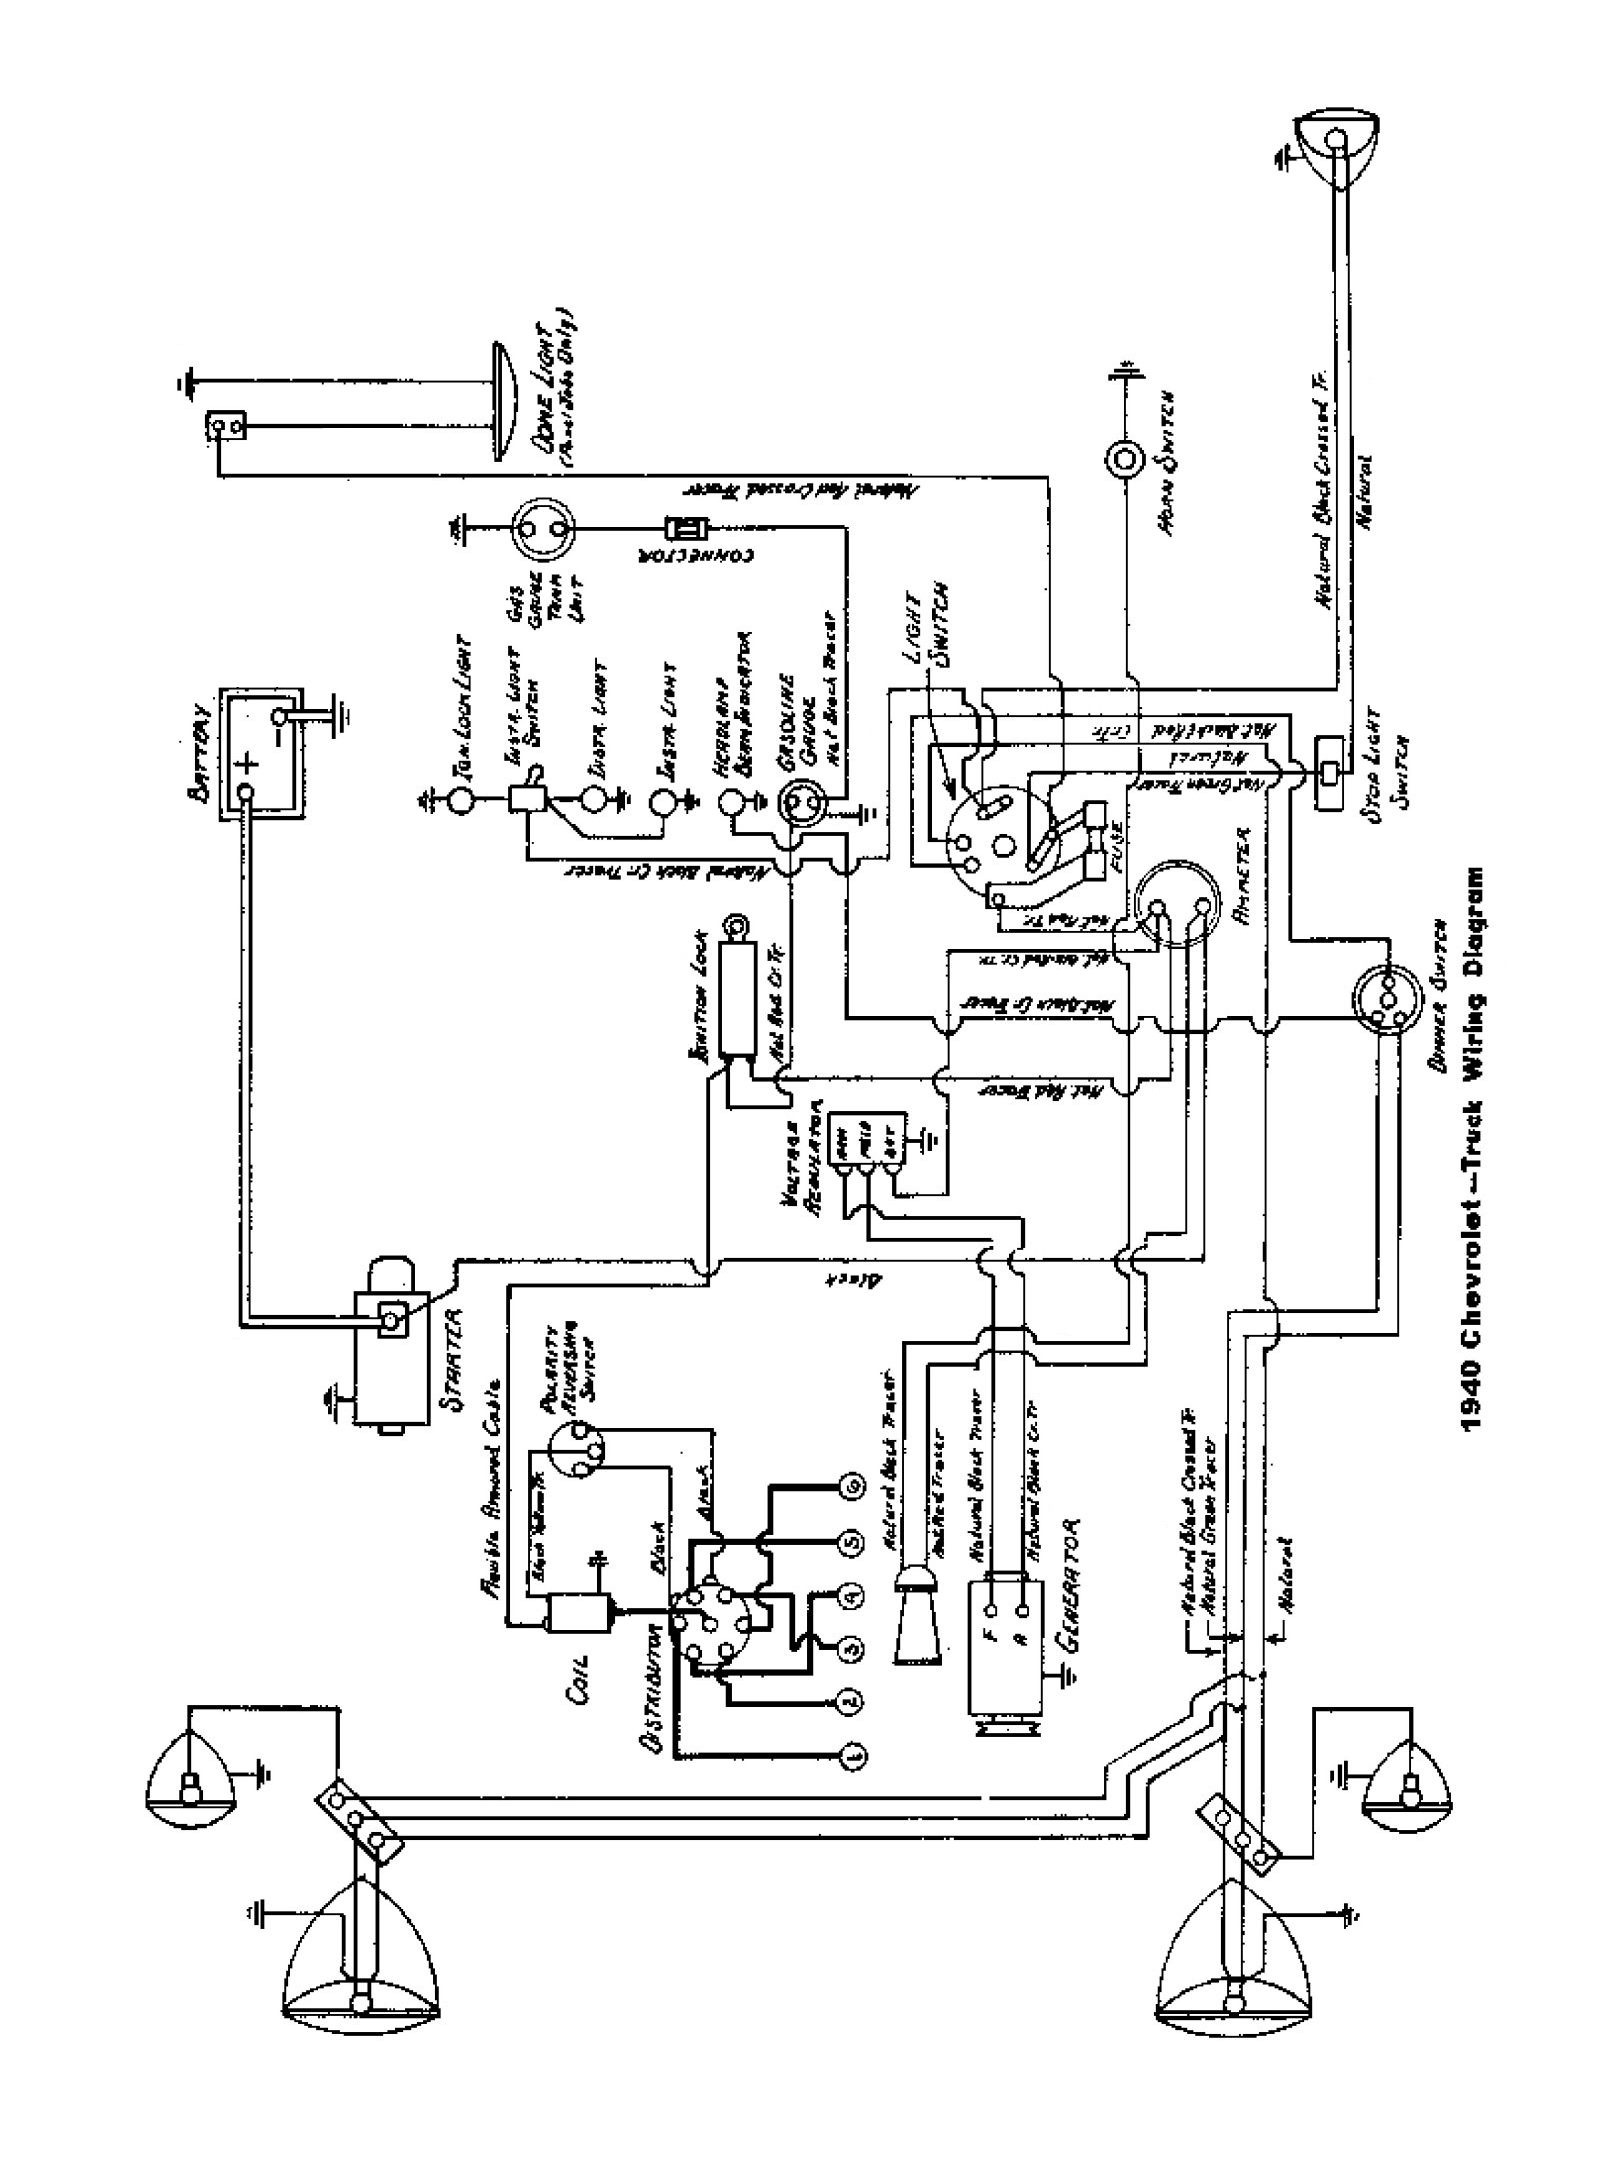 1953 Chevy Truck Wiring Schematics Center Wiring Diagram Region Landing Region Landing Iosonointersex It